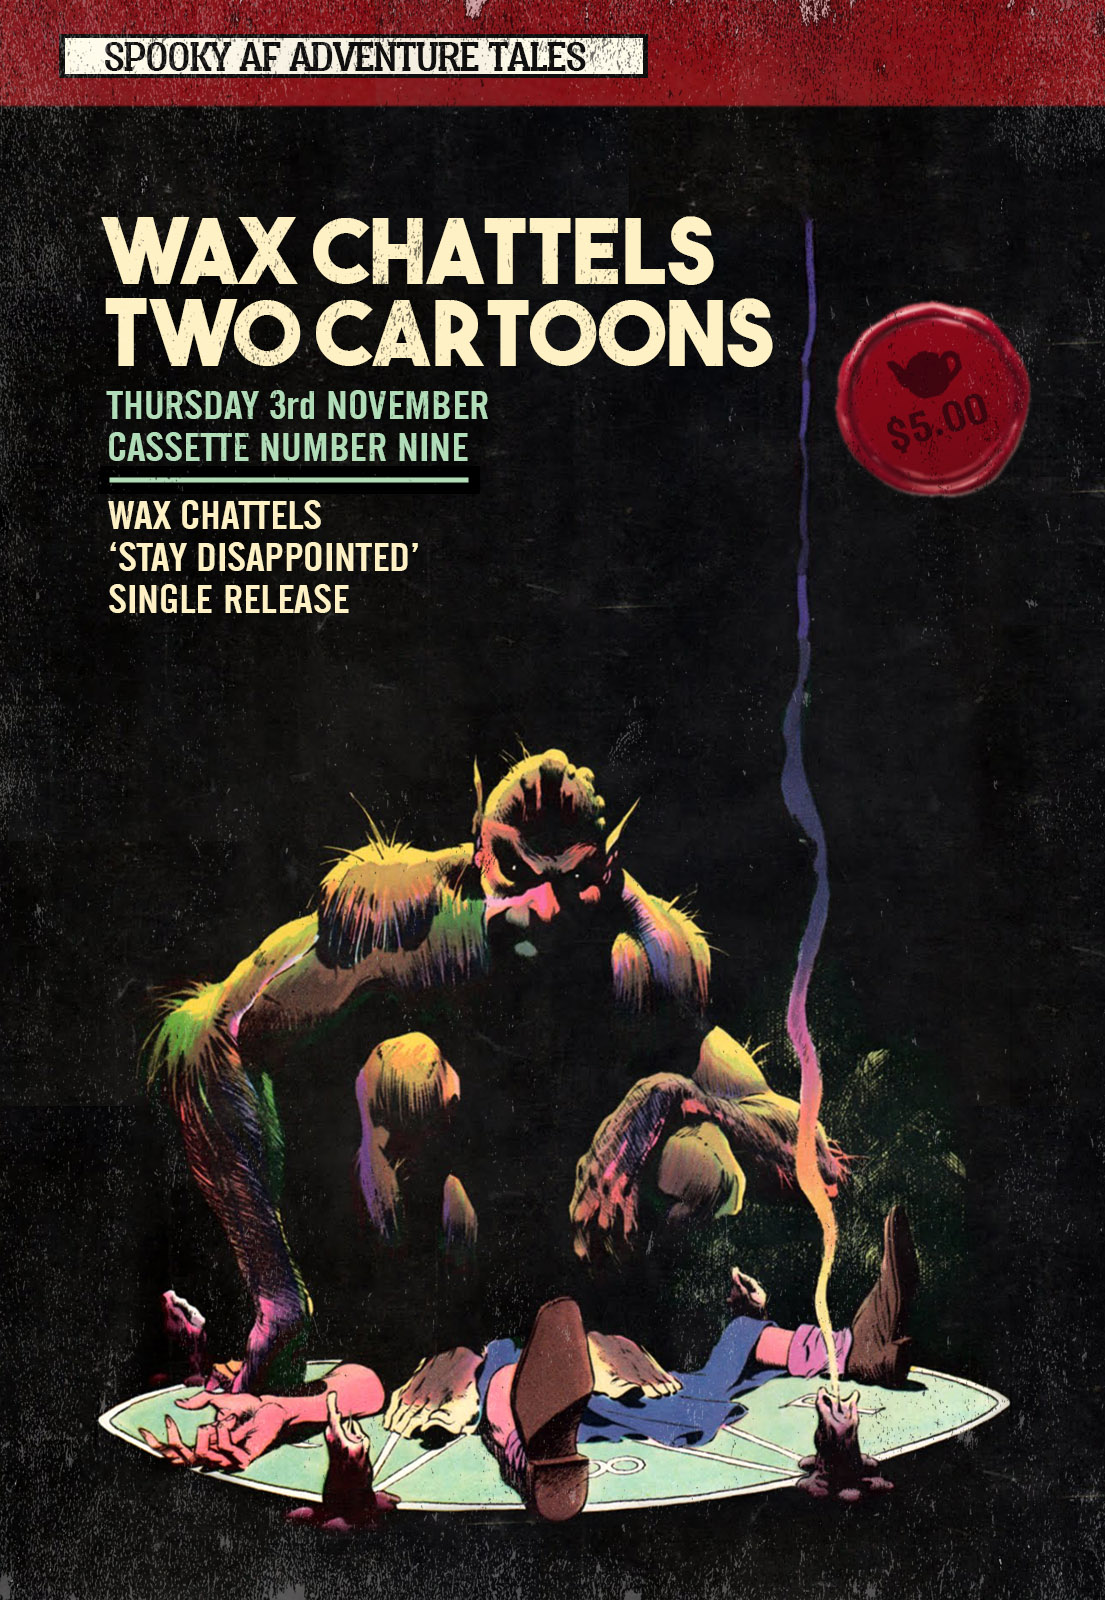 Wax Chattels Single Release Party With Two Cartoons